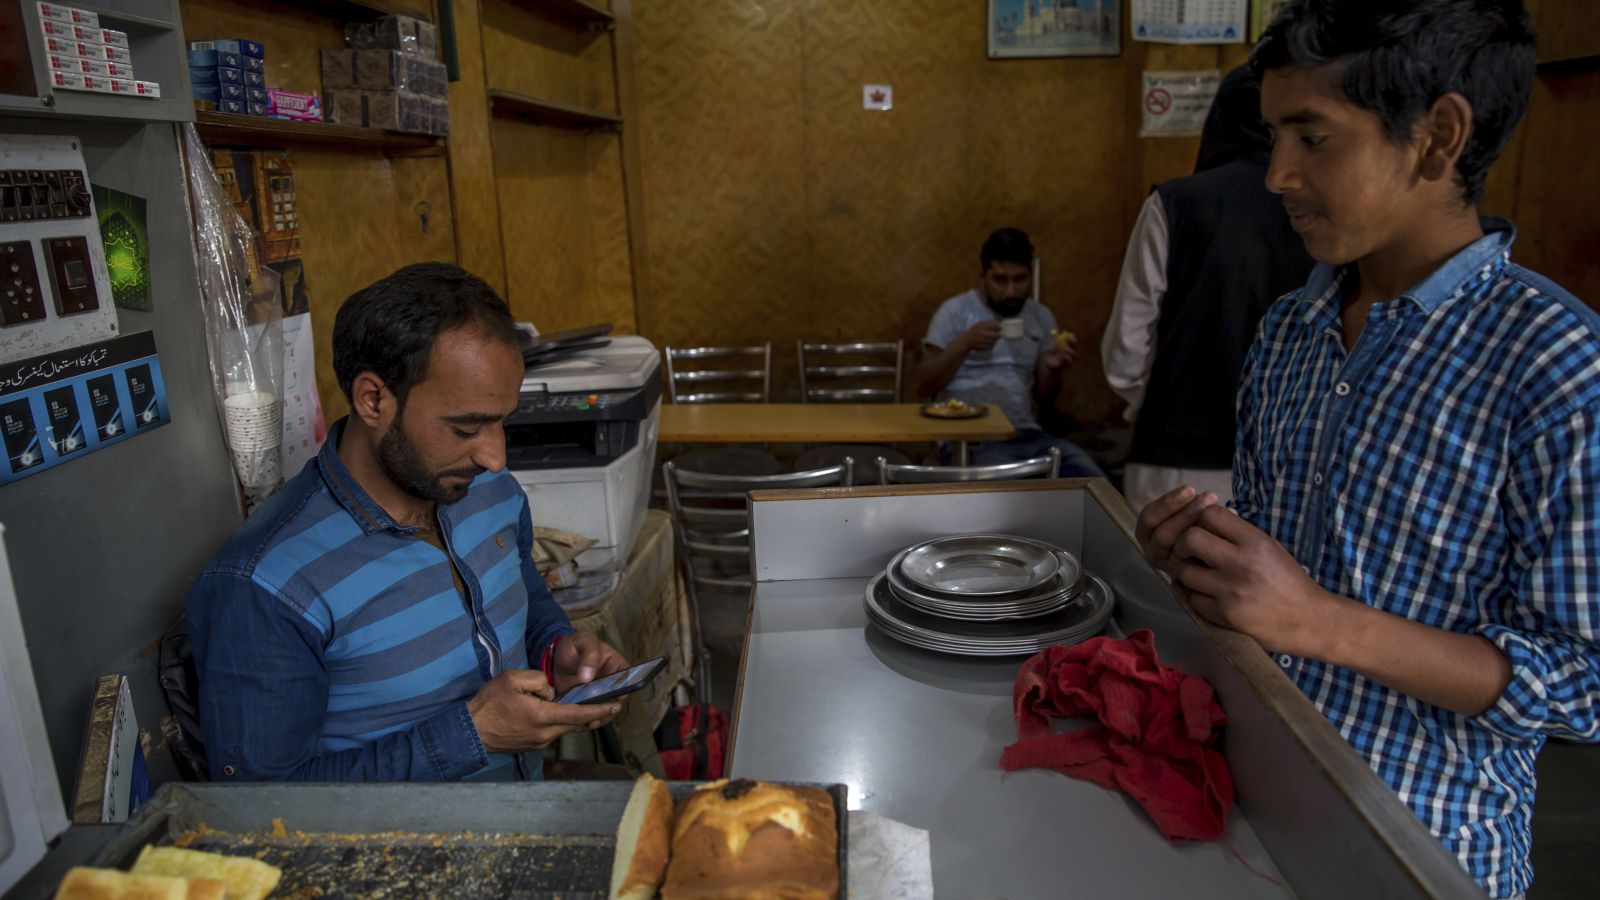 "Kashmiri man Umar Rashid, browses internet on his mobile phone as he sits inside his restaurant in Srinagar, Indian controlled Kashmir, Wednesday, April 26, 2017. On Wednesday, authorities ordered internet service providers to block 16 social media sites, including Facebook and Twitter, and popular online chat applications for one month ""in the interest of maintenance of public order."" The government has often halted internet service in the region in the past in an attempt to prevent anti-India demonstrations from forming. But this is the first time authorities have shut down social media following the circulation    of videos of alleged abuse by Indian soldiers."